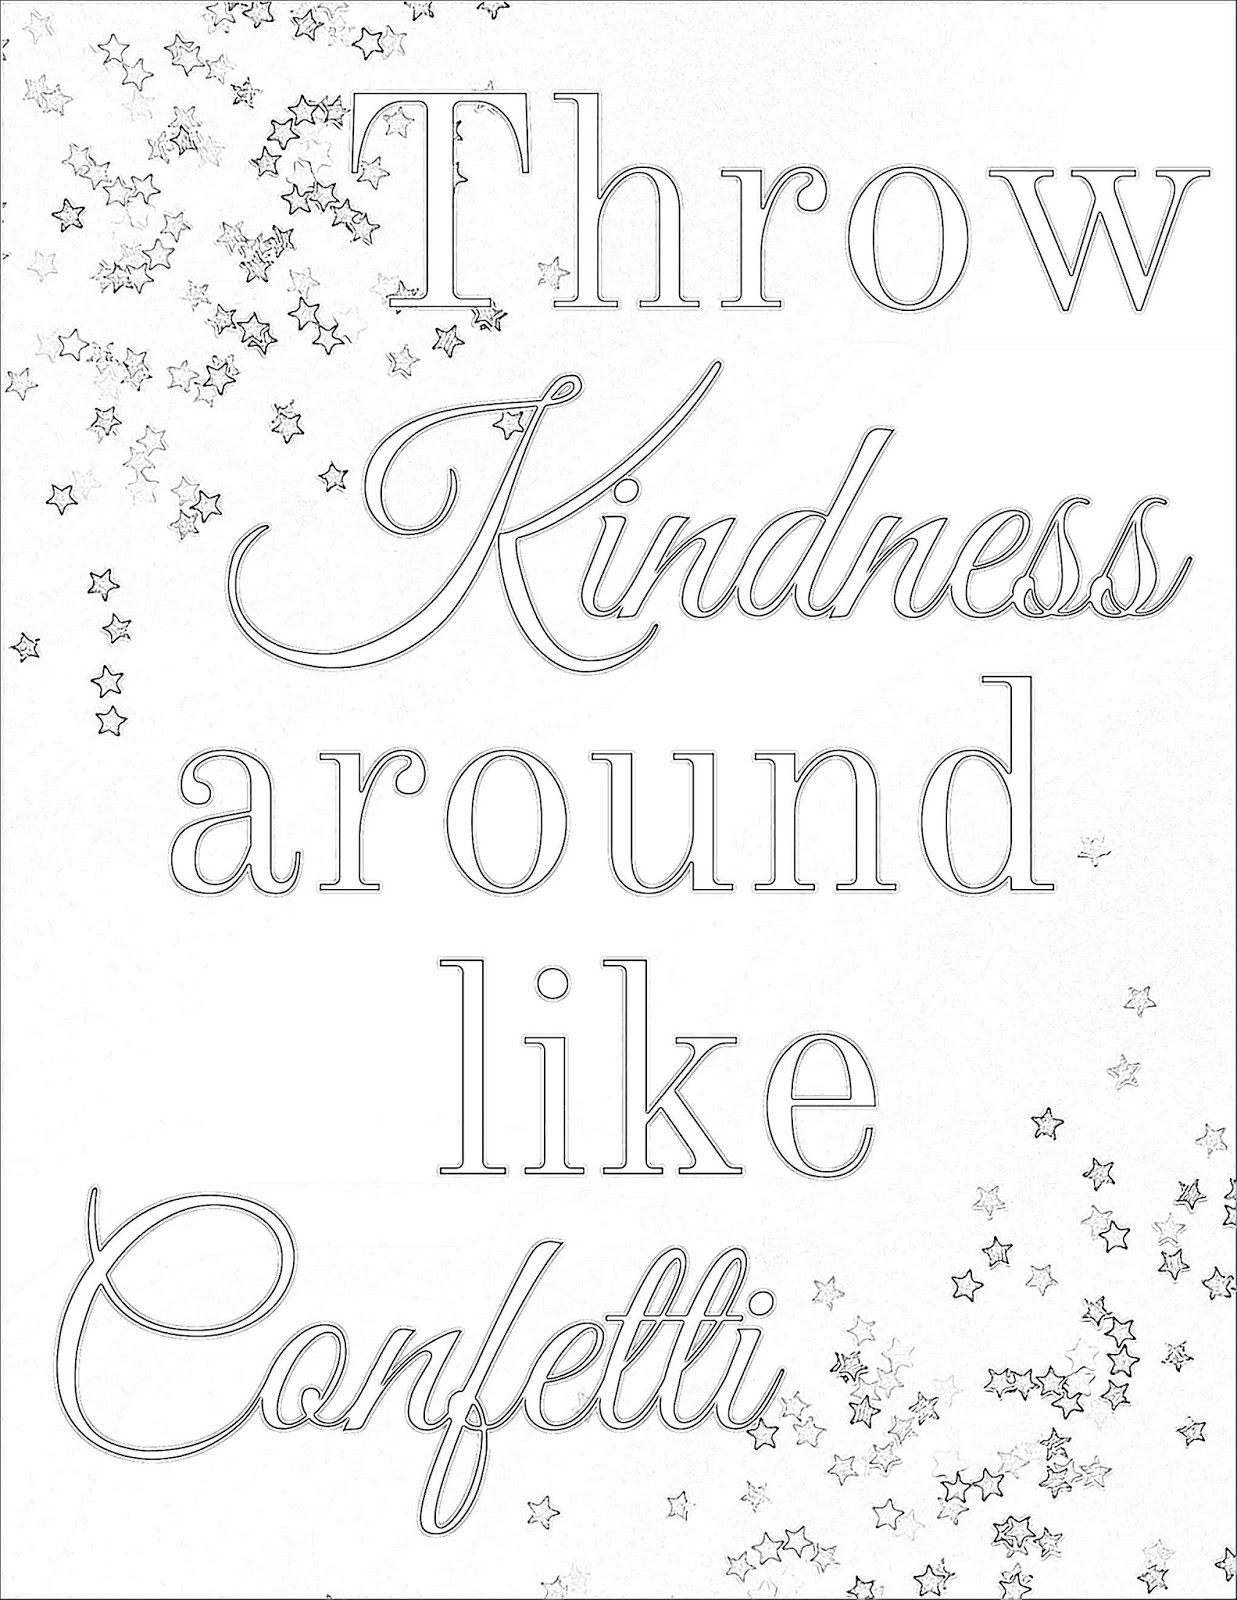 Kindness Coloring Pages At Getdrawings Com Free For Personal Use